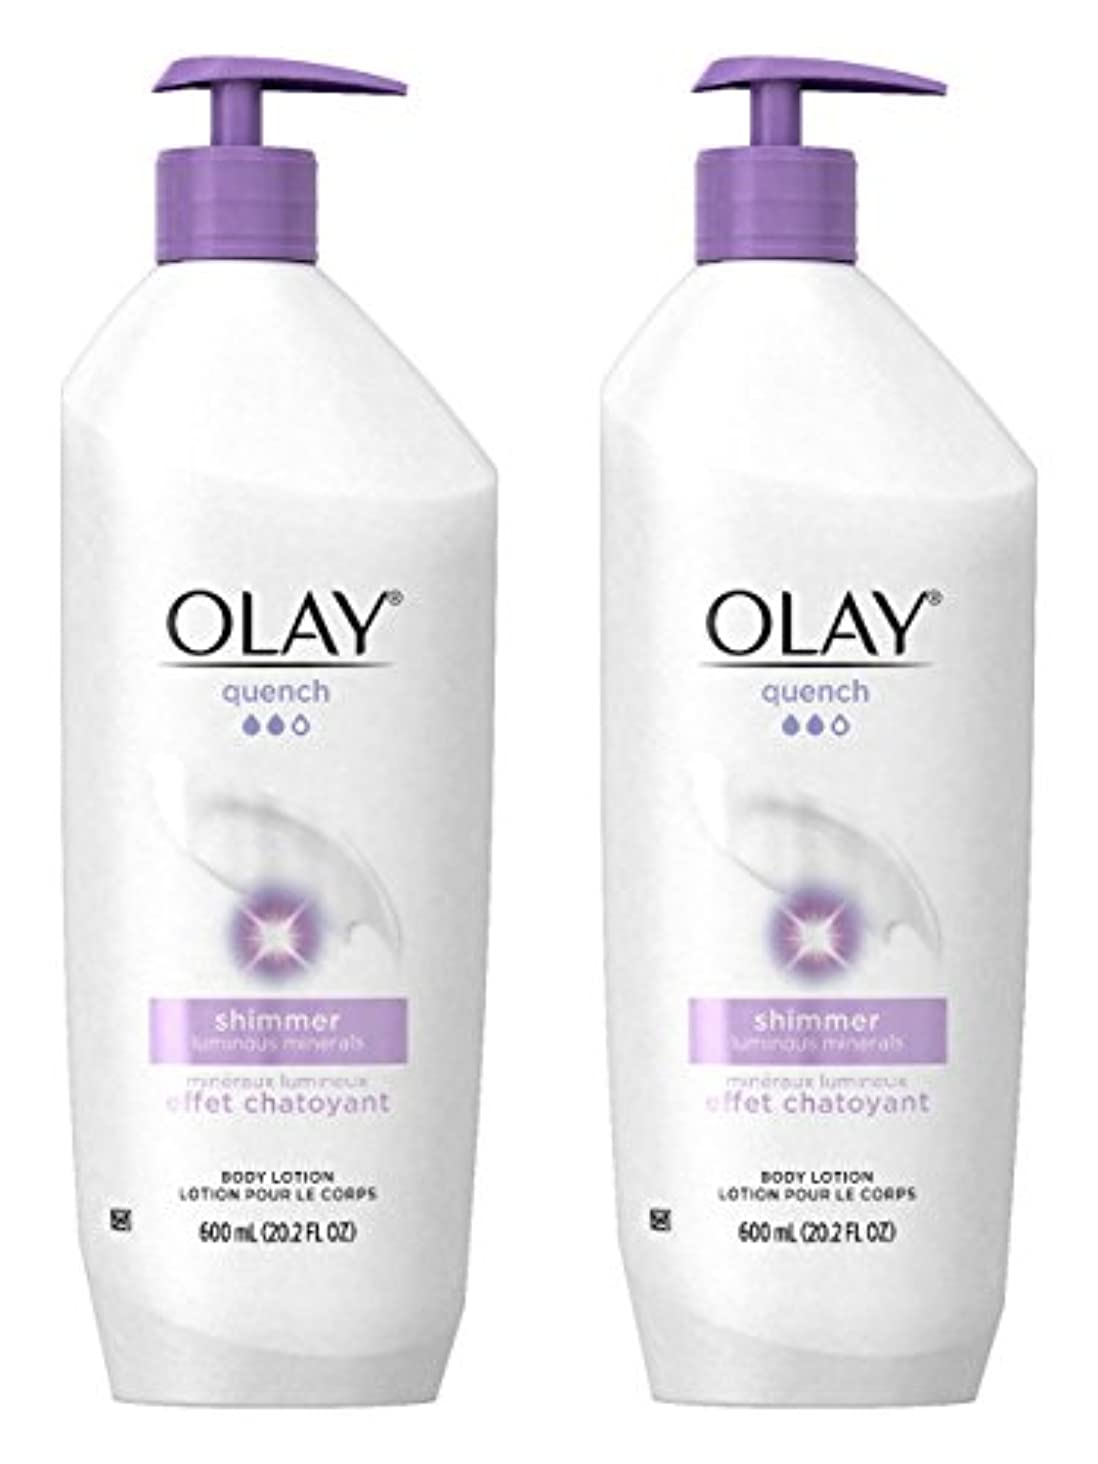 排泄物有効愚かなOlay Quench Daily Lotion Plus Shimmer Body Lotion 20.2 Fl Oz (Pack of 2) by Olay [並行輸入品]